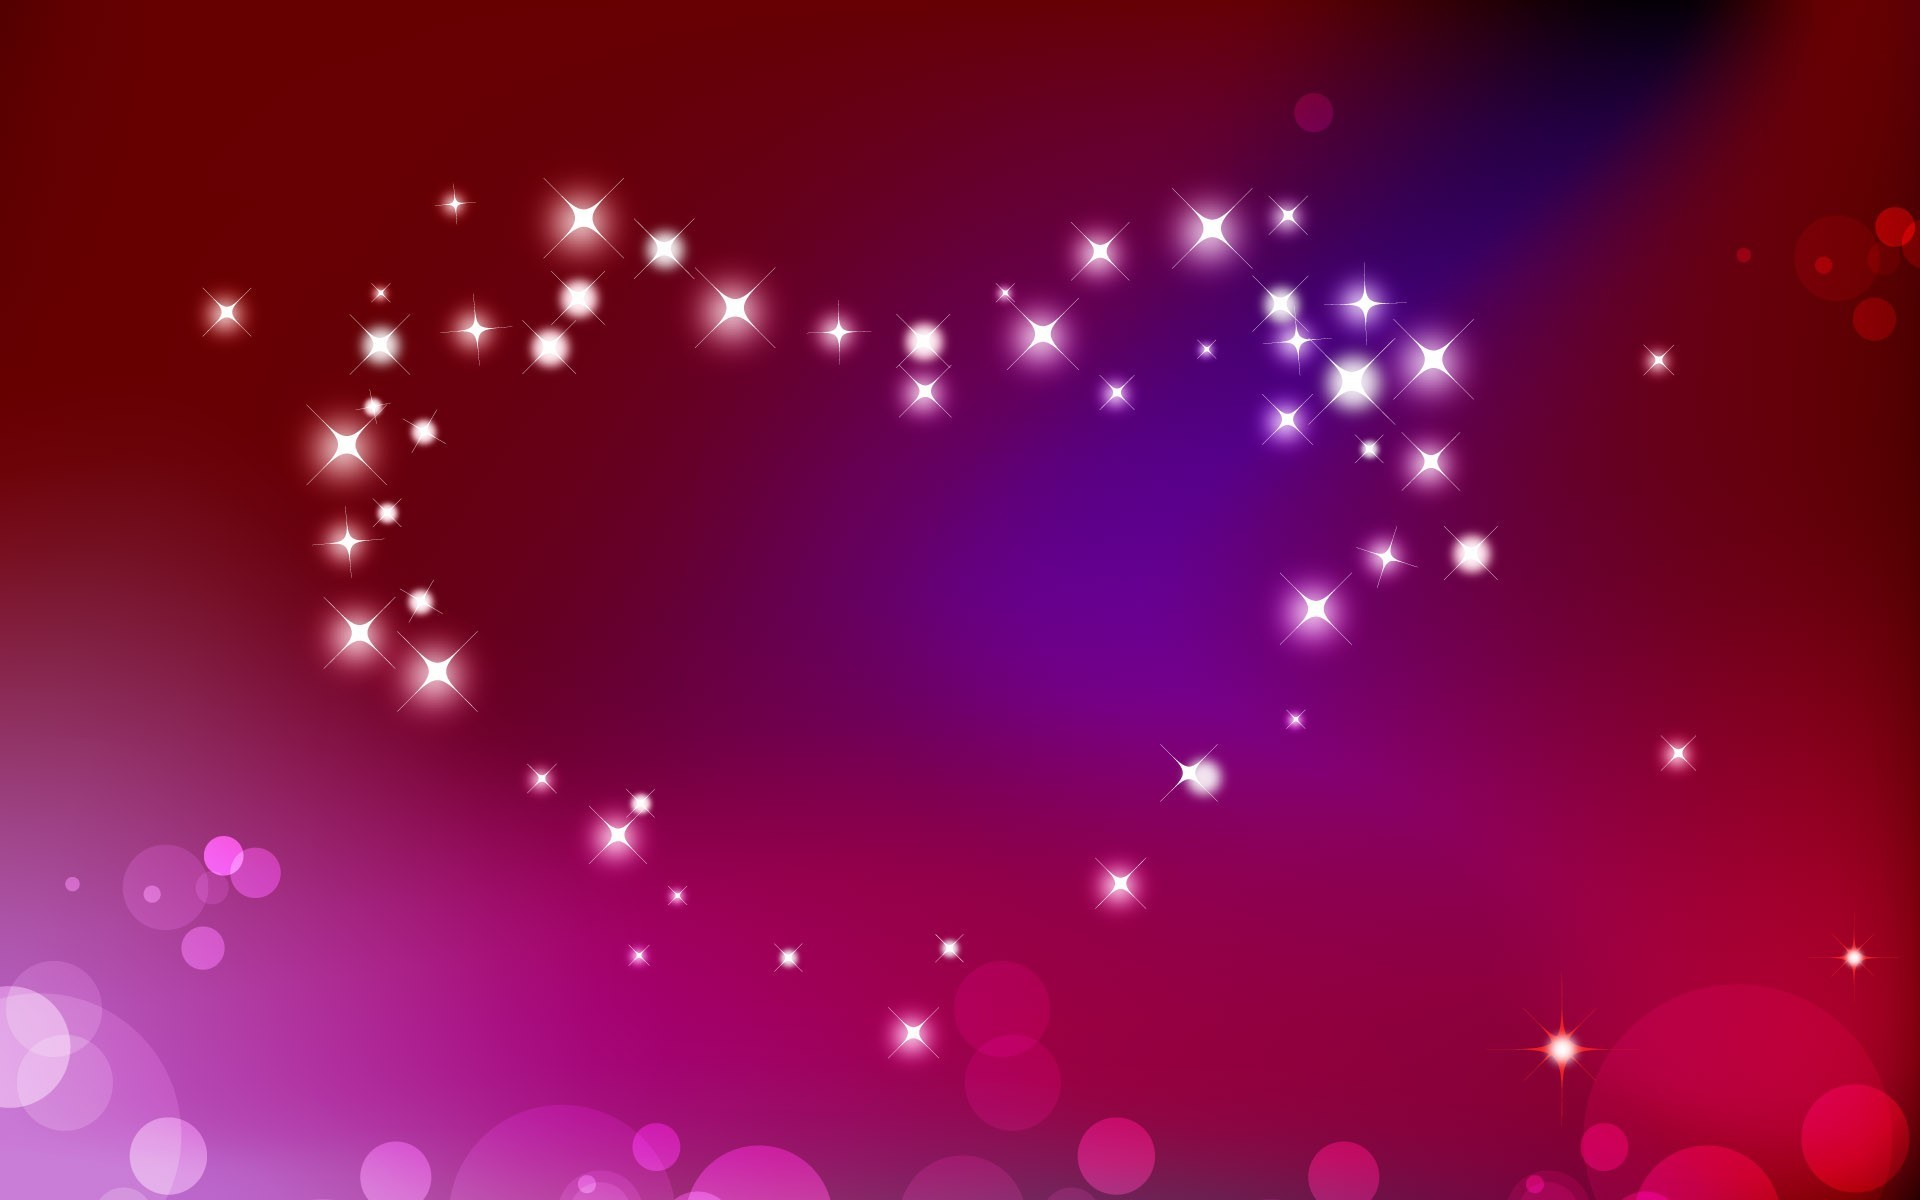 abstract love red Hearts HD Wallpaper